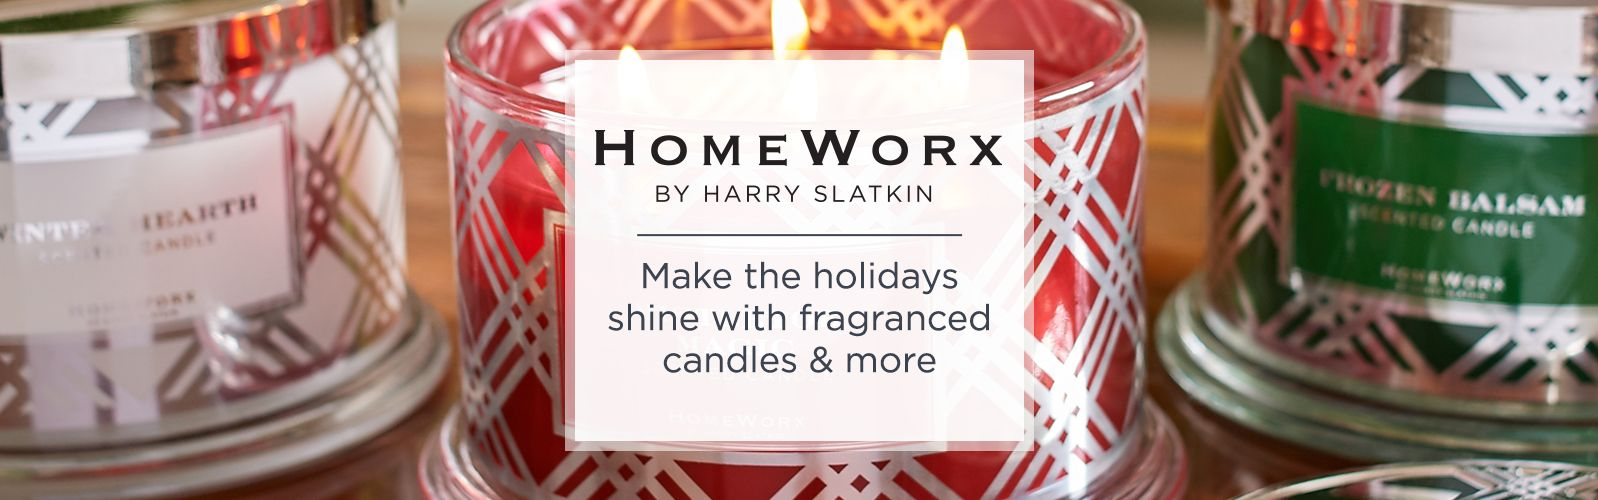 Homeworx by Harry Slatkin - Make the holidays shine with fragranced candles & more